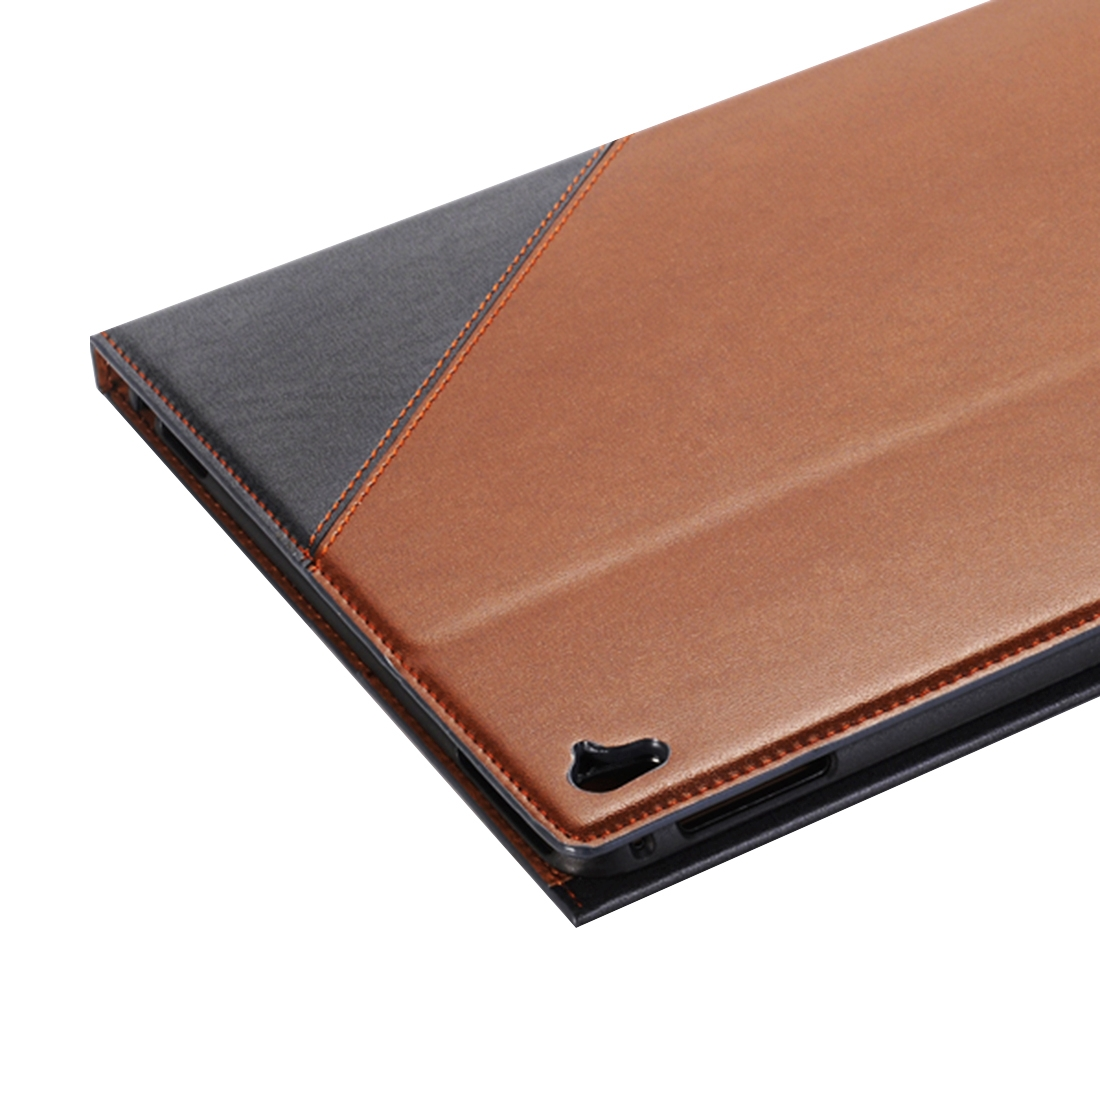 Book Style Leather iPad Air 2 Case (9.7 Inch), Slim Profile (Grey)